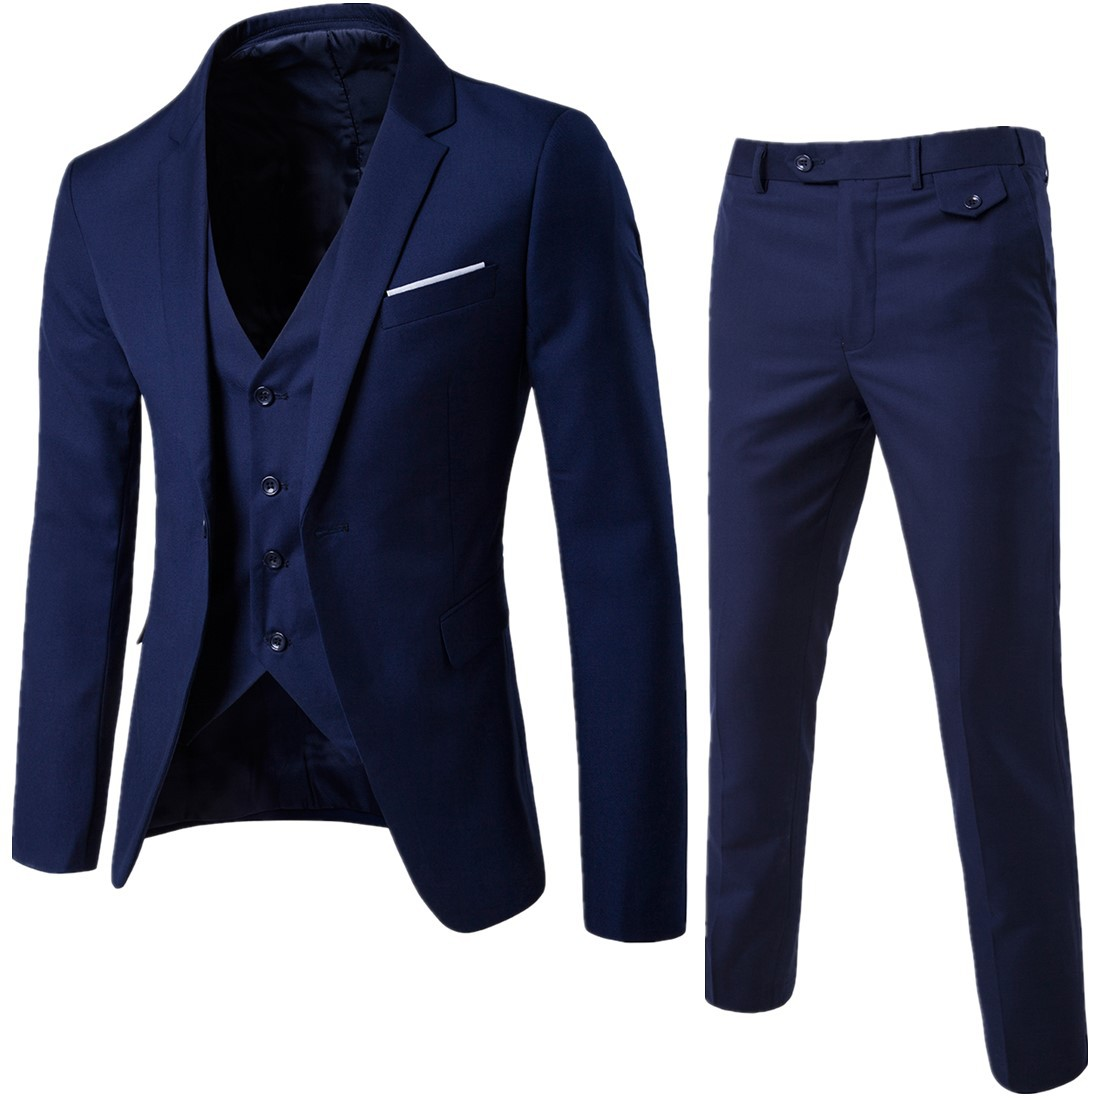 Suit Men Autumn And Winter Slim Fit Three-piece Set Groom Wedding Dress Marriage Best Man Suit Men's Wear Formal Wear